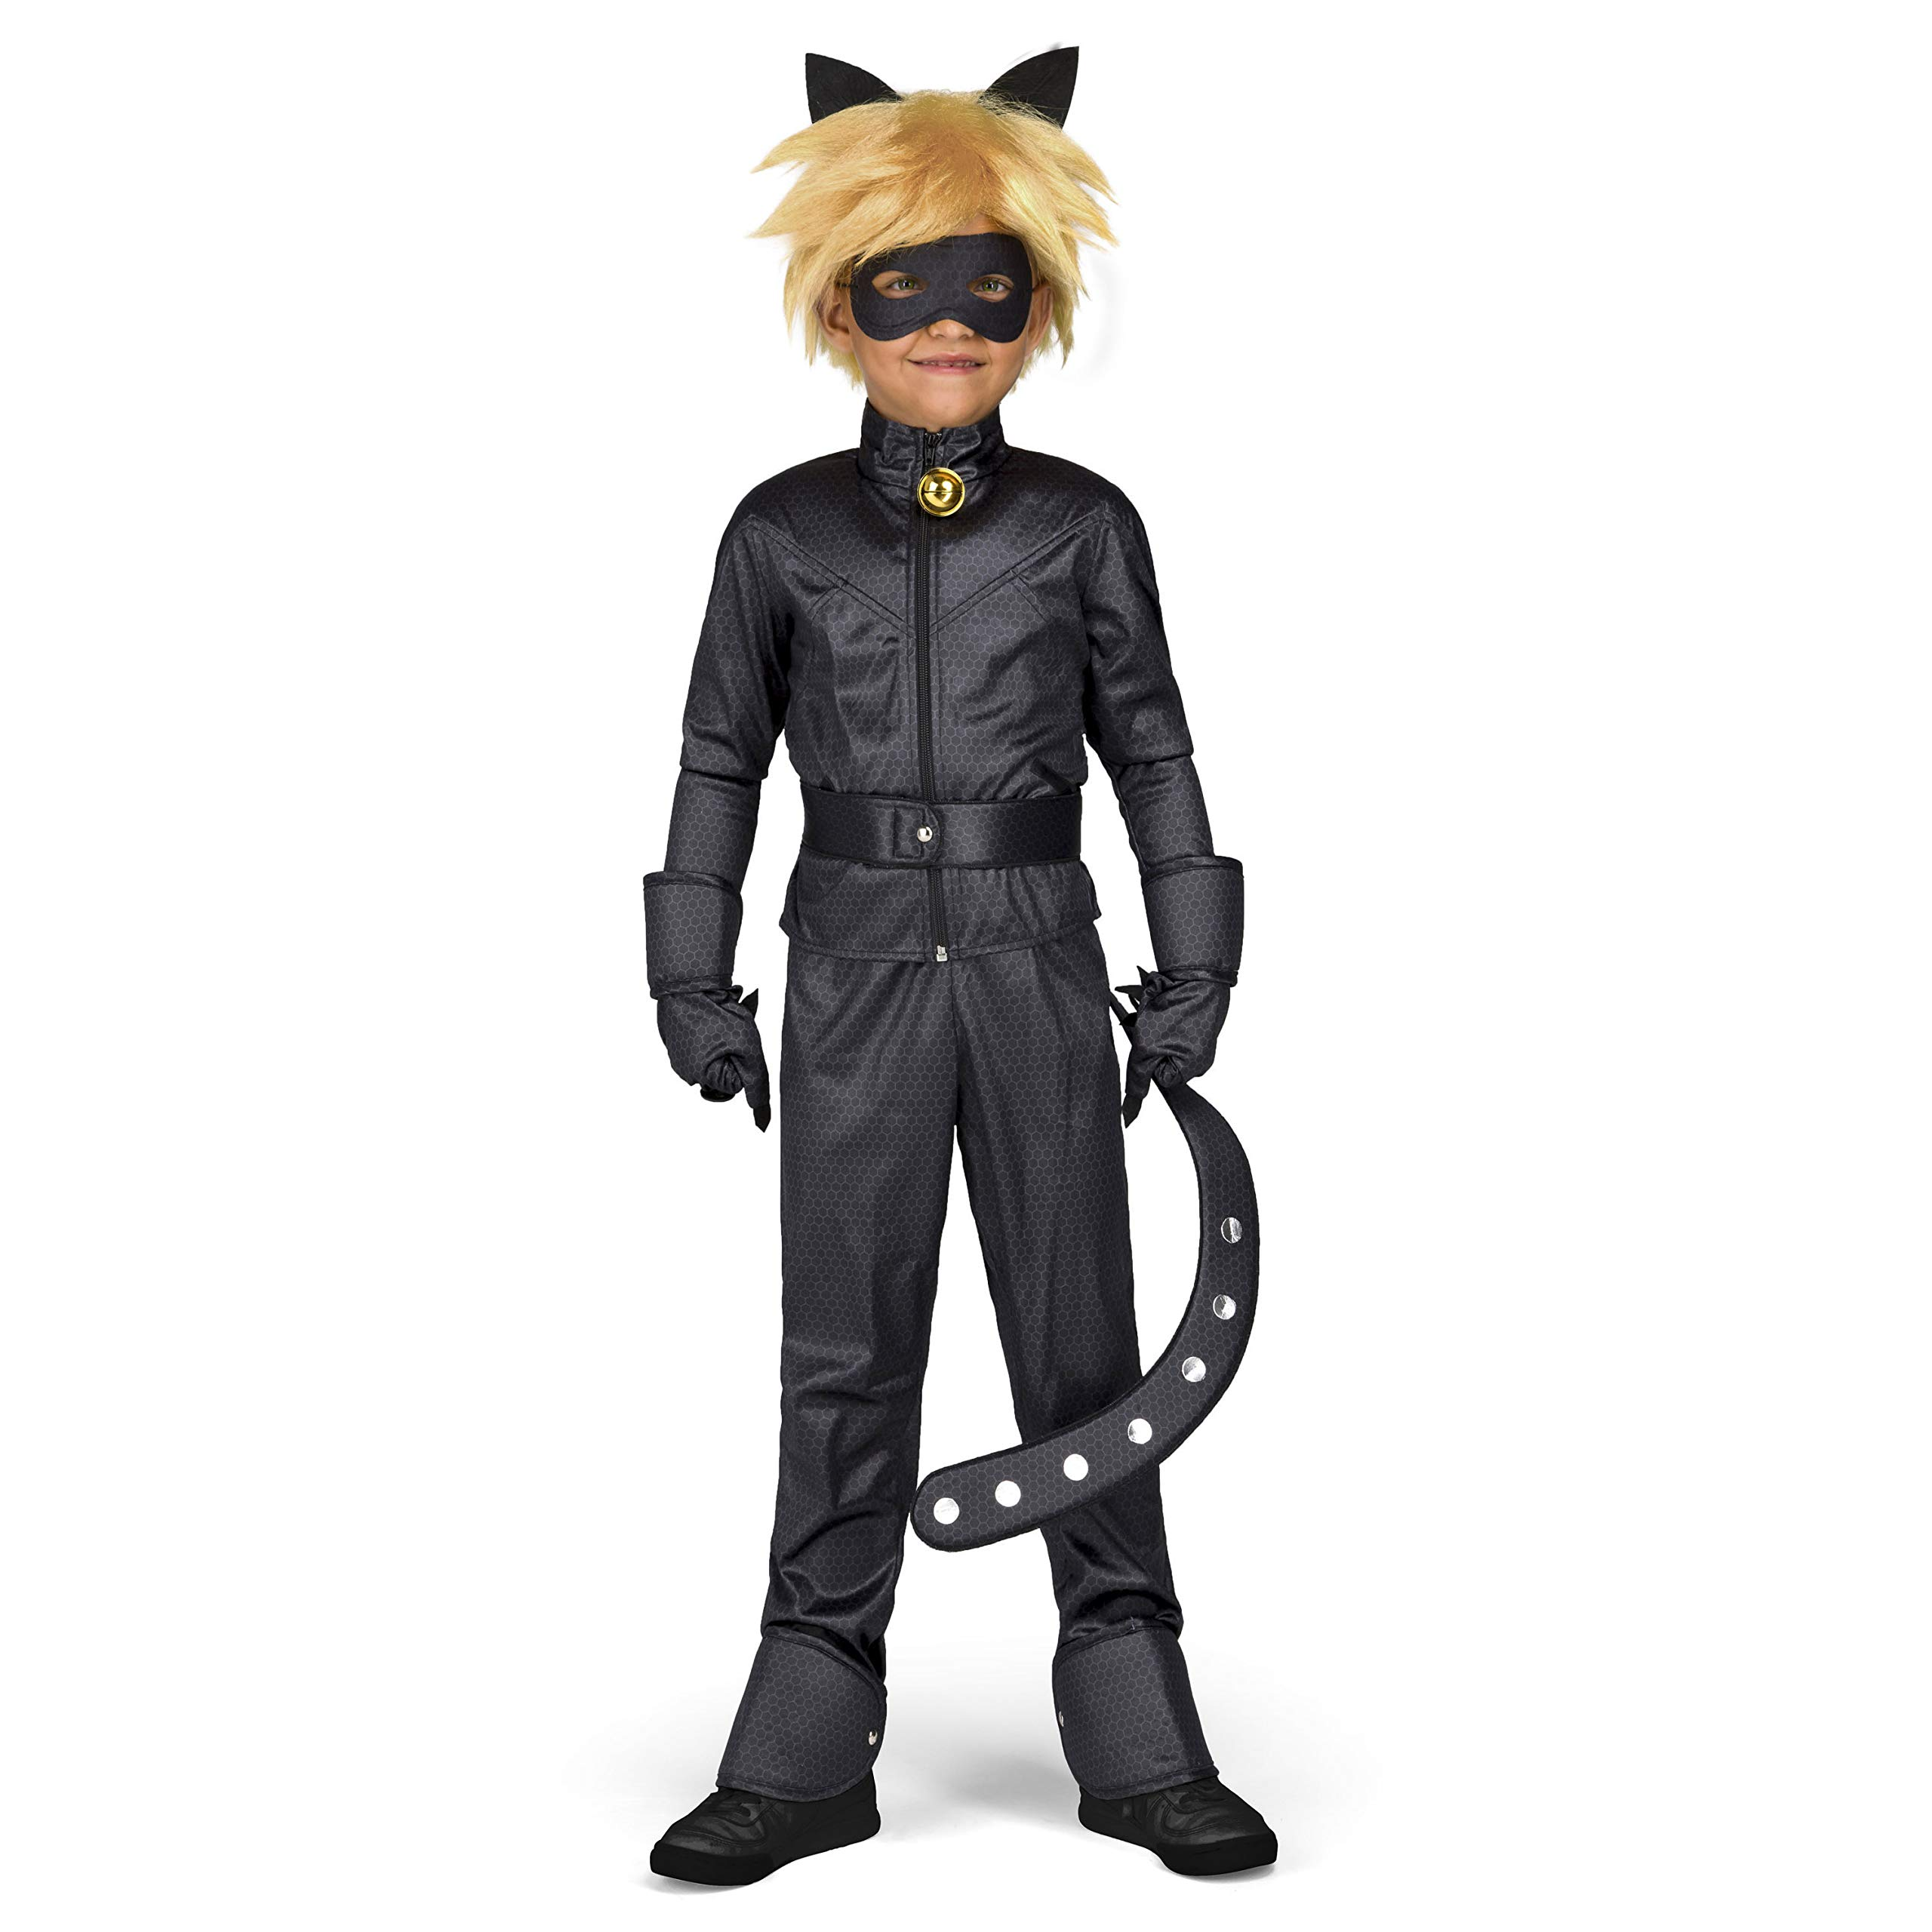 My Other Me Me 231152 Miraculous Cat Noir - Disfraz para niños, 9 ...